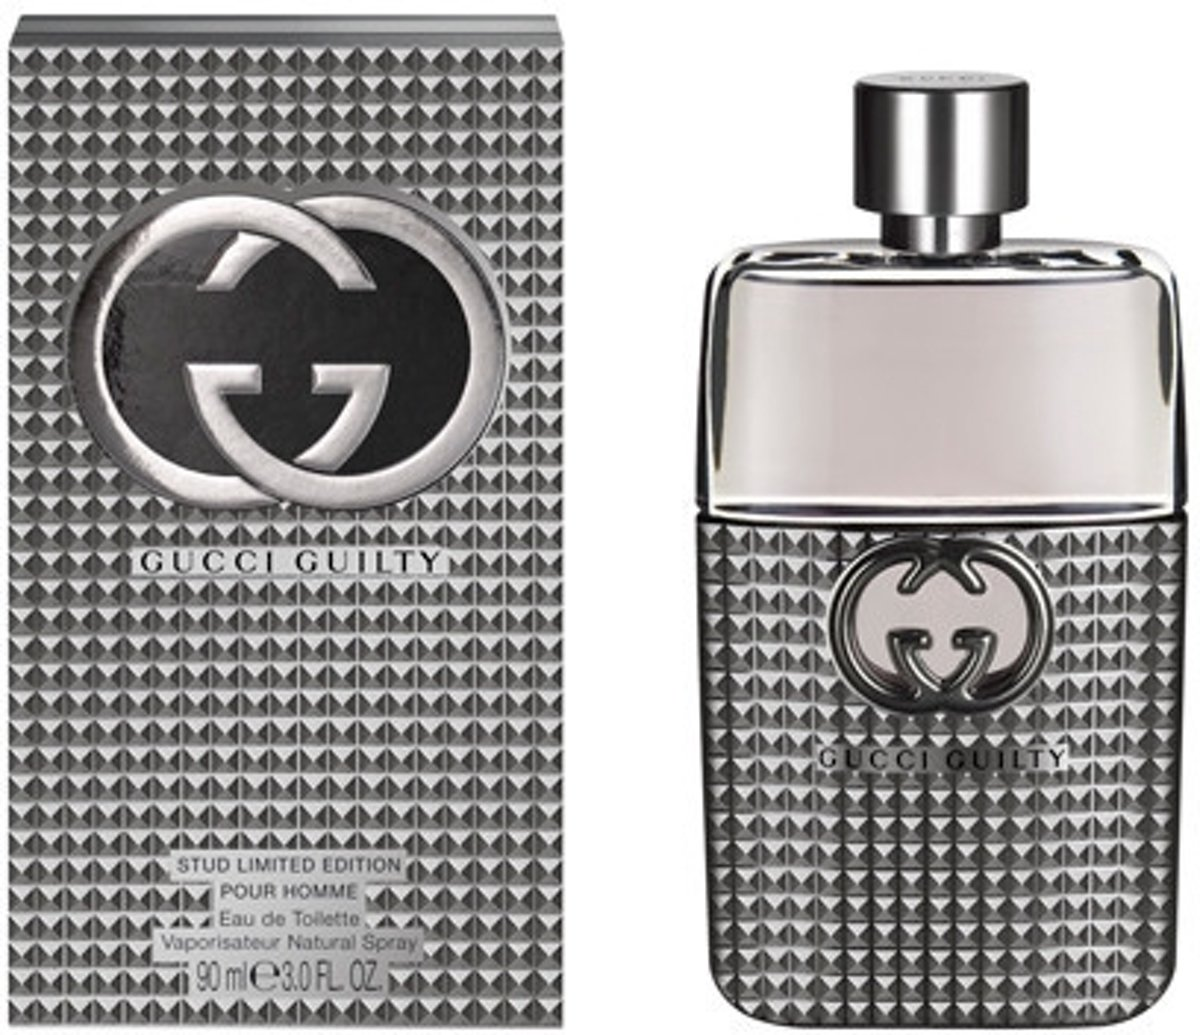 Gucci Guilty Stud Limited Edition 90 ml - Eau de toilette - for Men